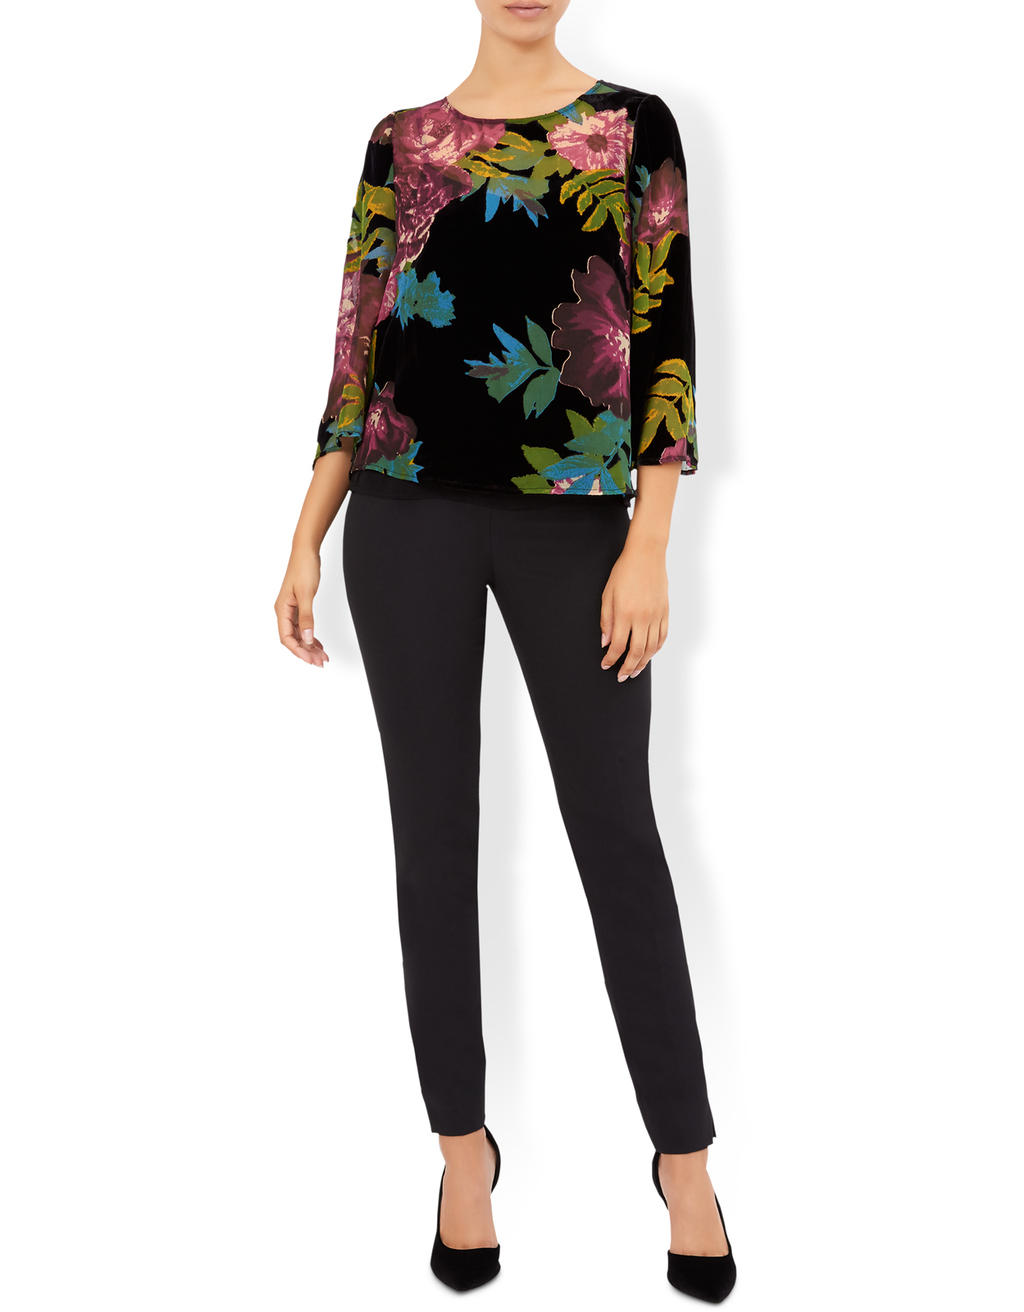 Mable Floral Top - neckline: round neck; secondary colour: purple; predominant colour: black; occasions: casual, creative work; length: standard; style: top; fibres: viscose/rayon - 100%; fit: body skimming; sleeve length: 3/4 length; sleeve style: standard; pattern type: fabric; pattern size: standard; pattern: florals; texture group: jersey - stretchy/drapey; multicoloured: multicoloured; season: a/w 2016; wardrobe: highlight